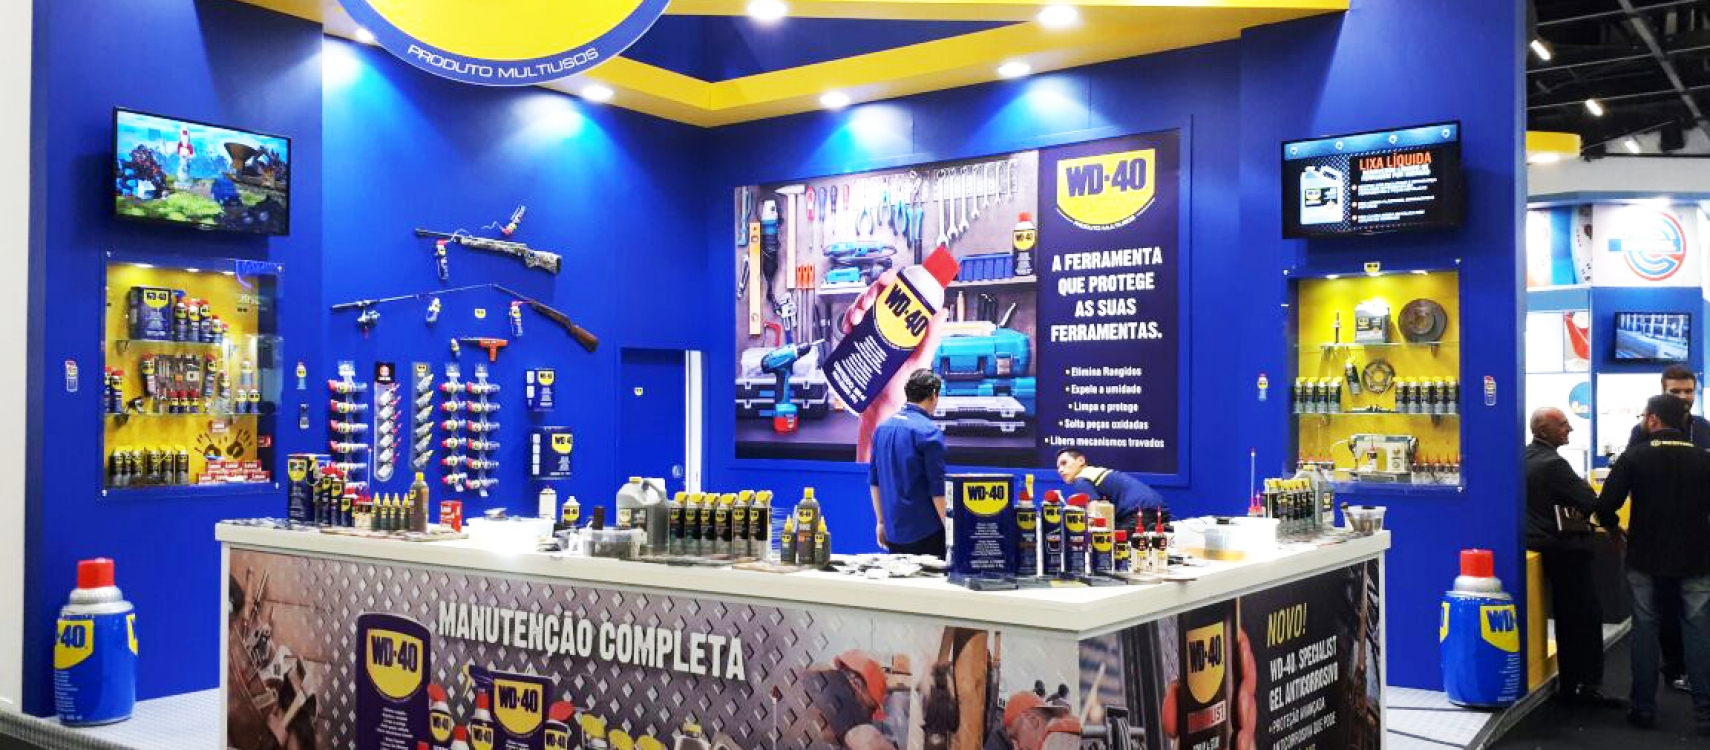 WD-40 É SUCESSO TOTAL NA FEICON 2017!